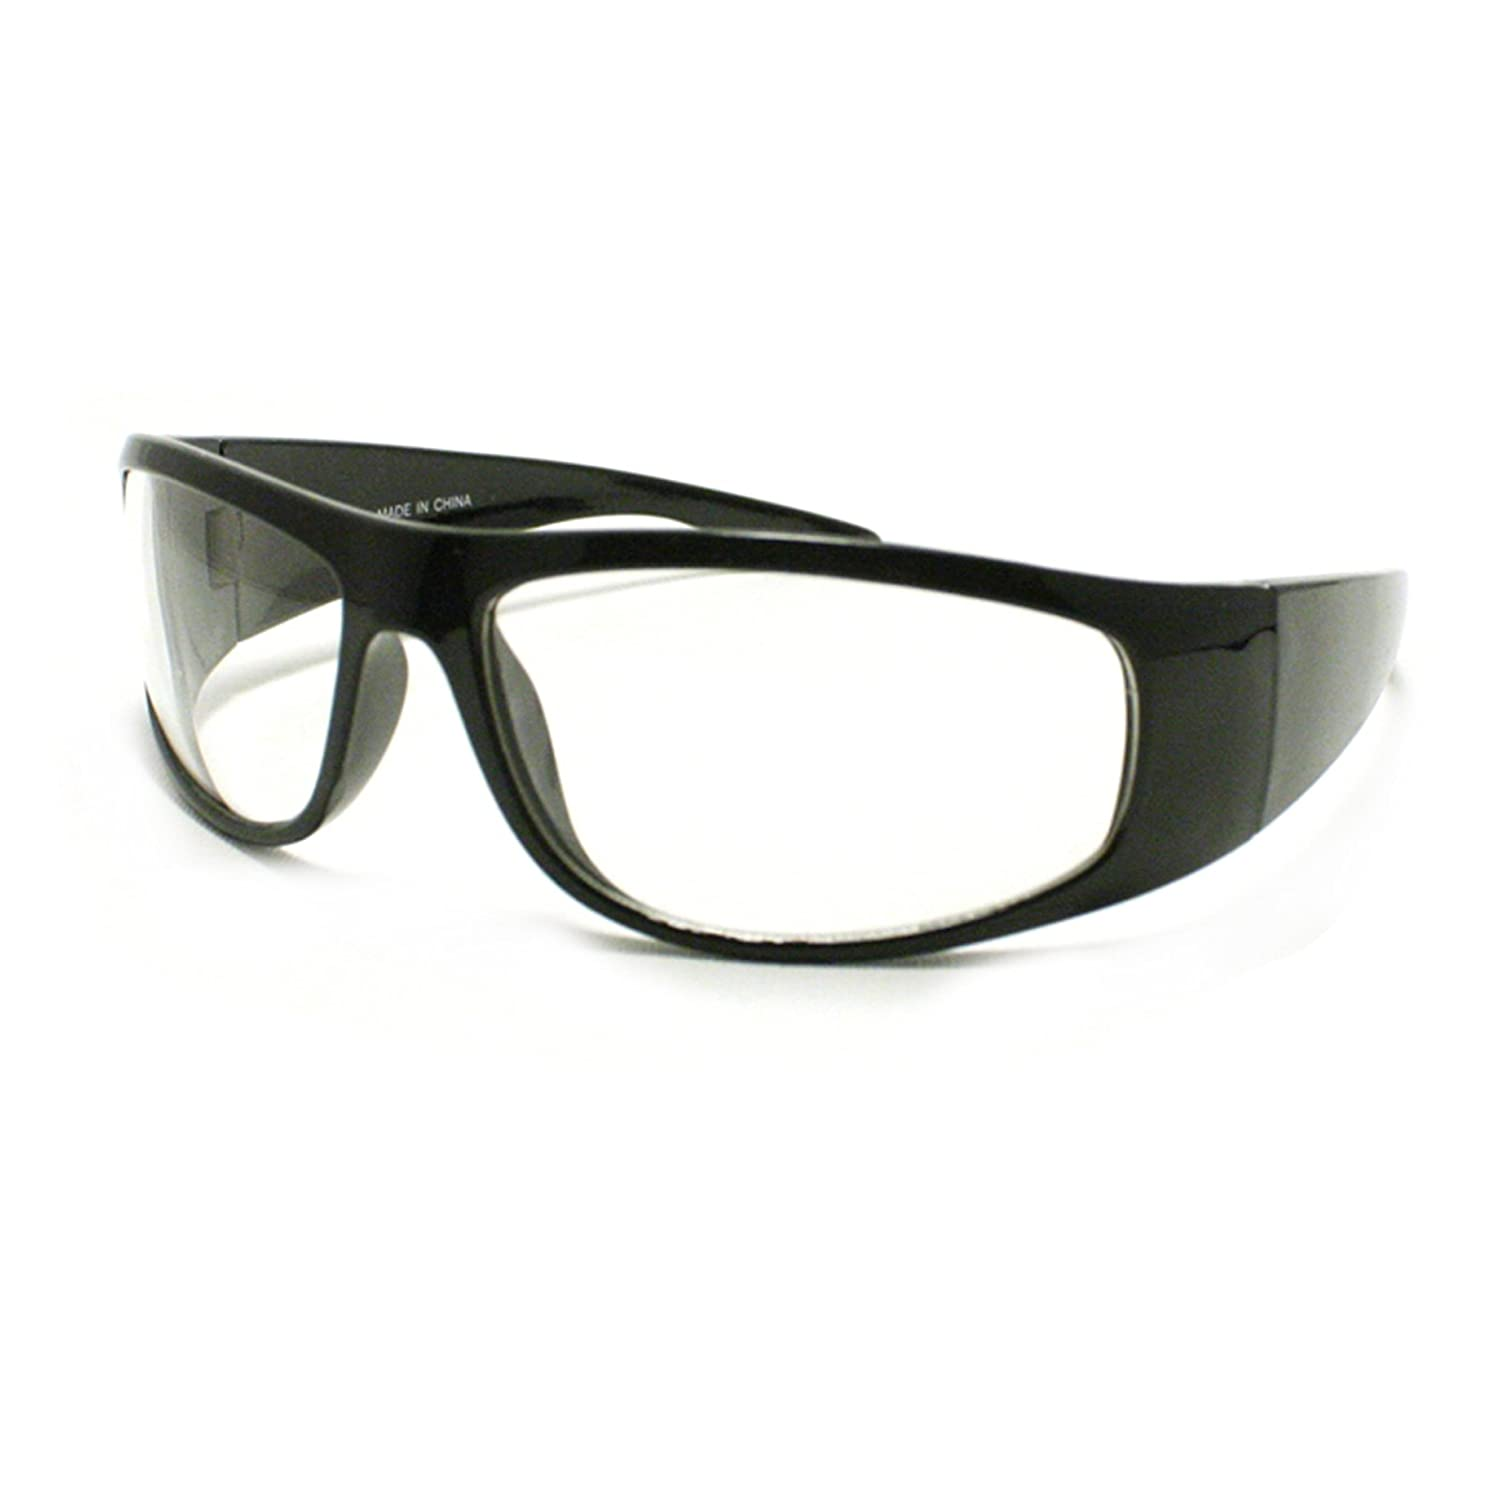 3462b39efc0 Amazon.com  Mens Biker Eyeglasses Clear Lens Motorcycle Riding Glasses  Black  Clothing